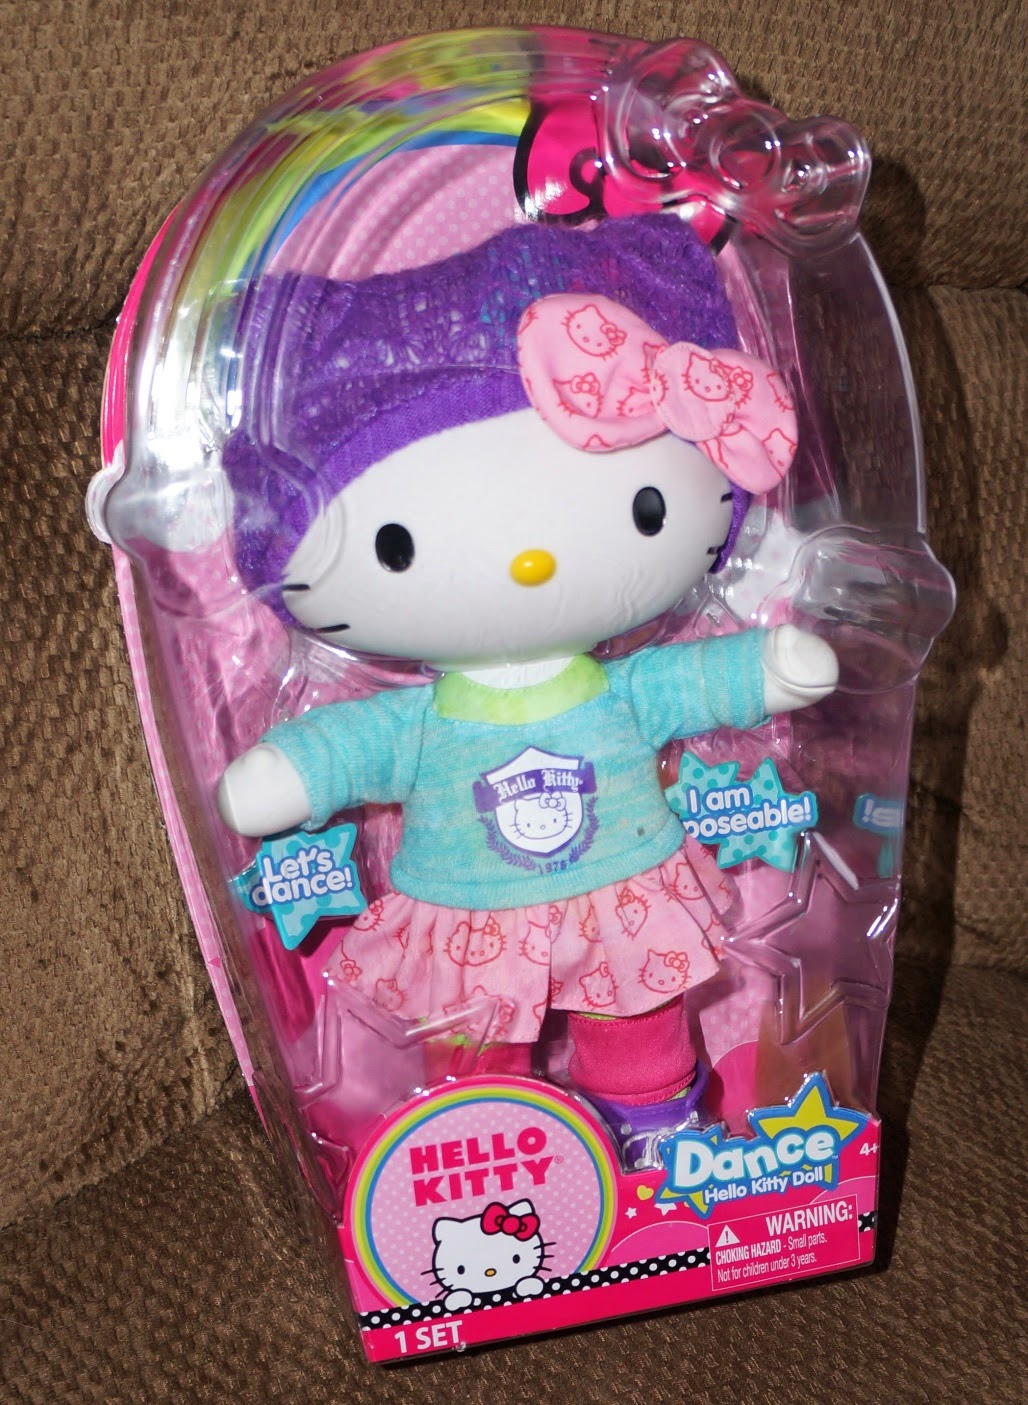 Hello Kitty Toys At Target : Evan and lauren s cool  hello kitty